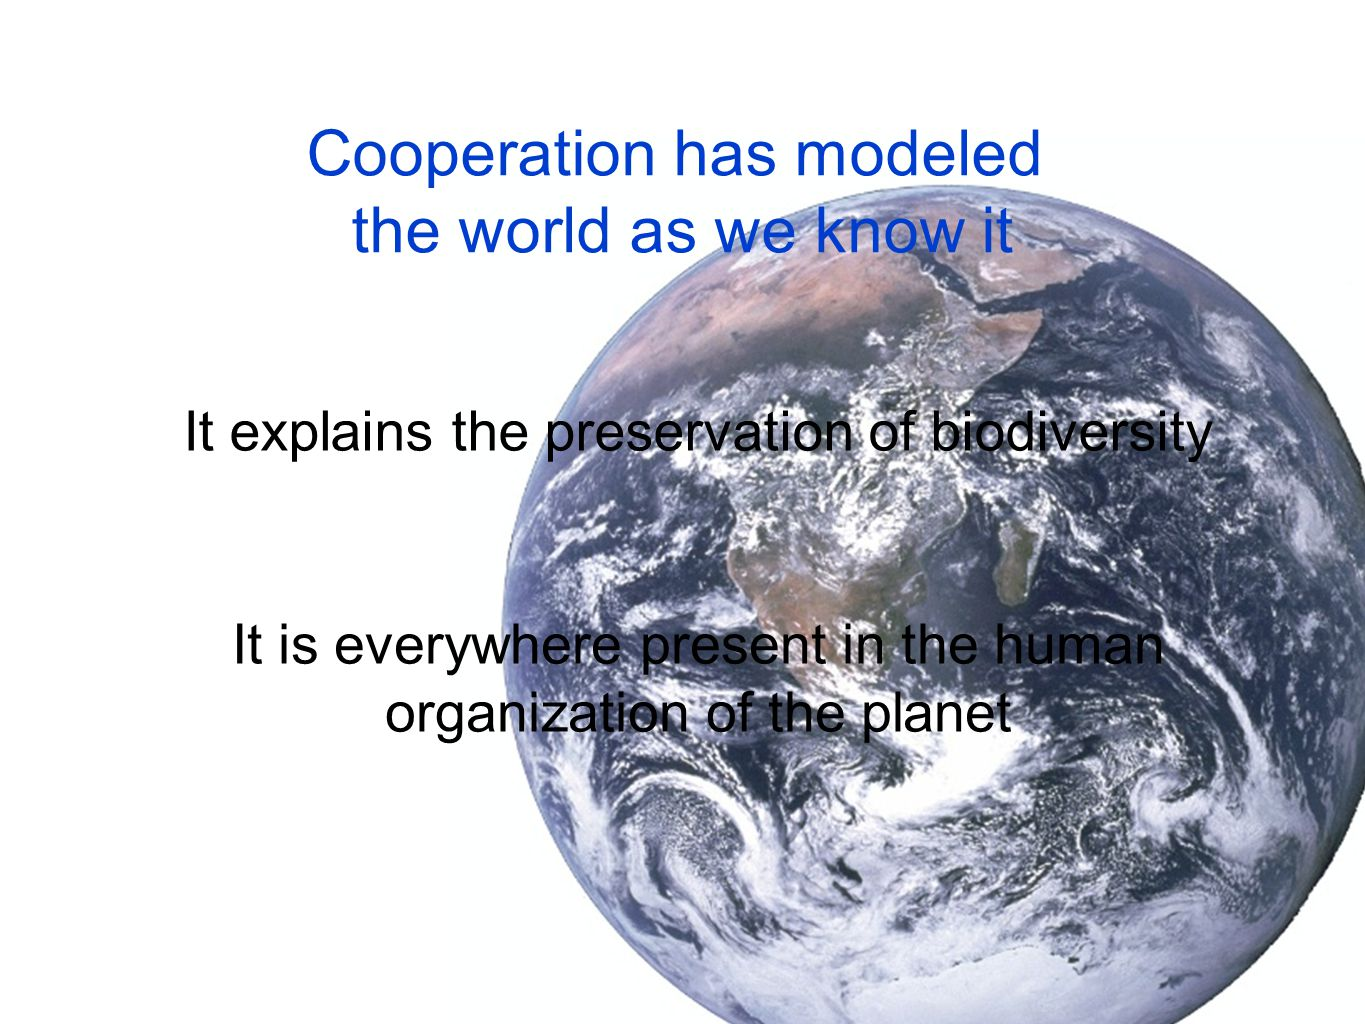 Cooperation has modeled the world as we know it It explains the preservation of biodiversity It is everywhere present in the human organization of the planet